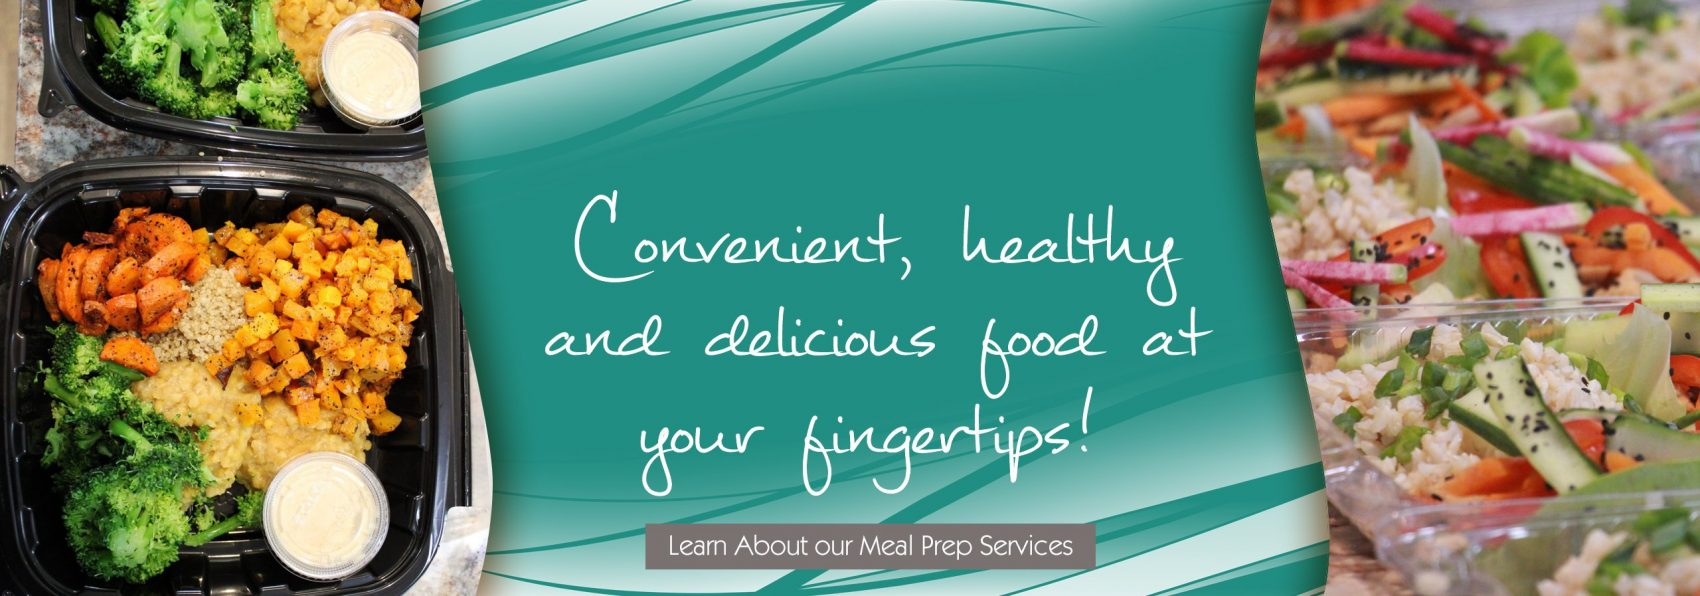 Convenient, healthy and delicious food at your fingertips! click here to visit our cafe!